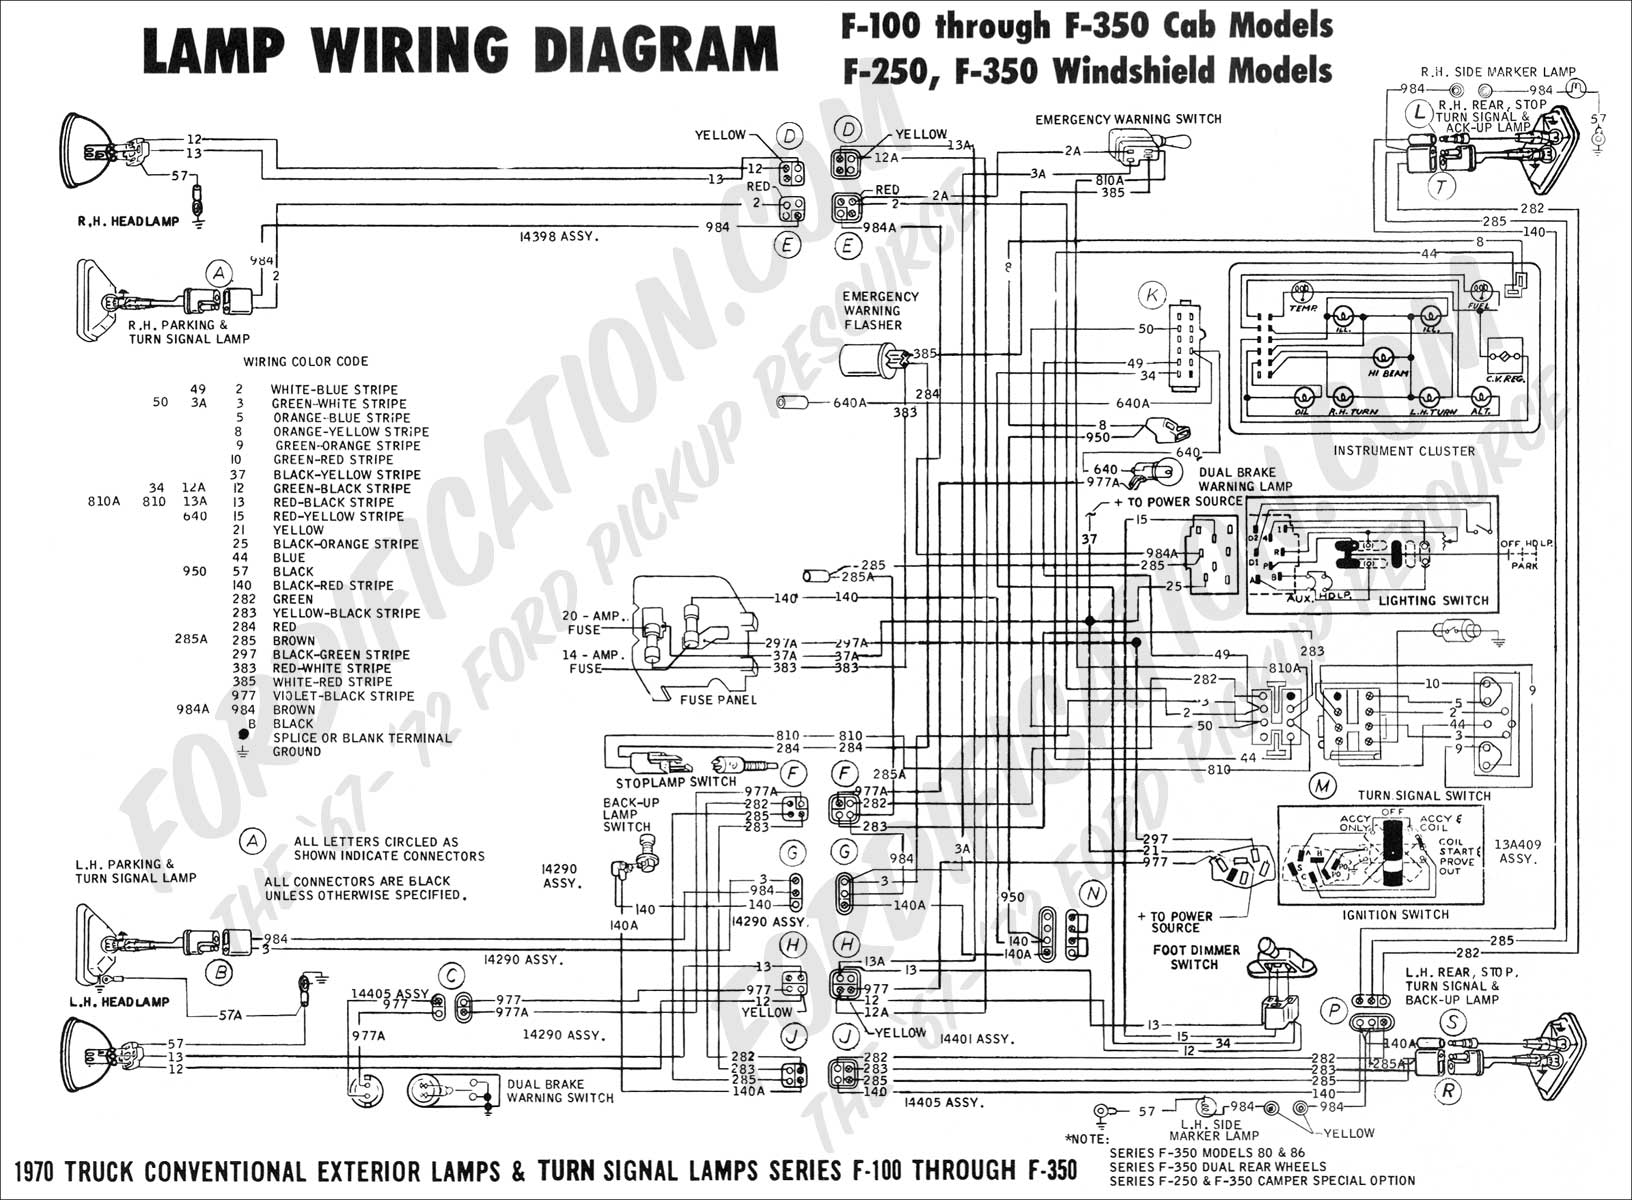 1994 mustang wiring diagram 86 f150 lights wiring diagram 86 wiring diagrams